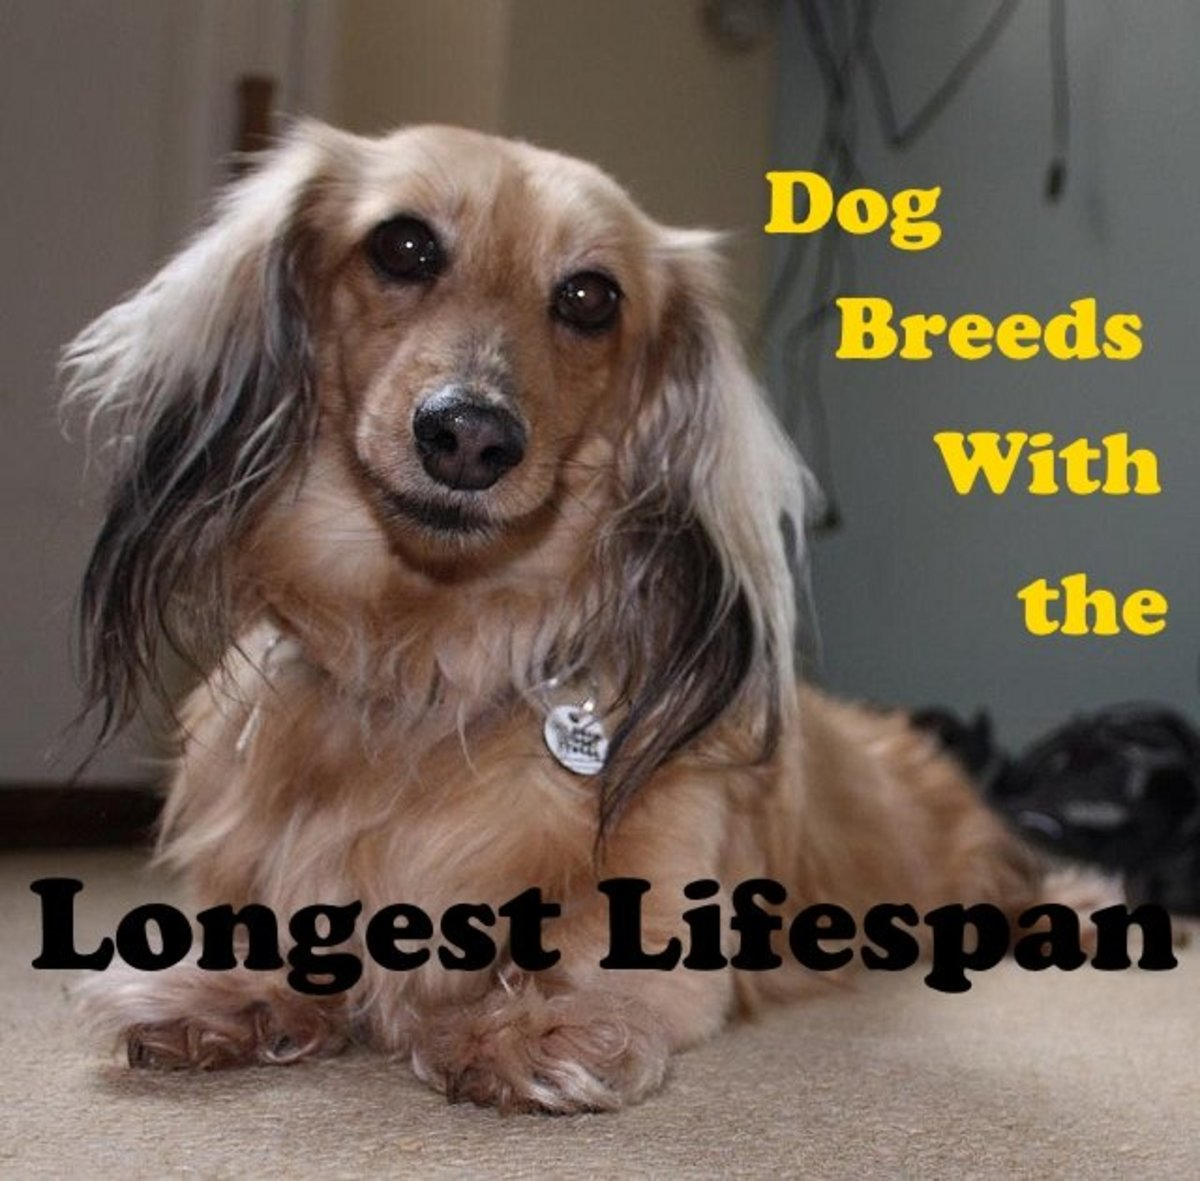 5 Dog Breeds With the Longest Life Expectancy